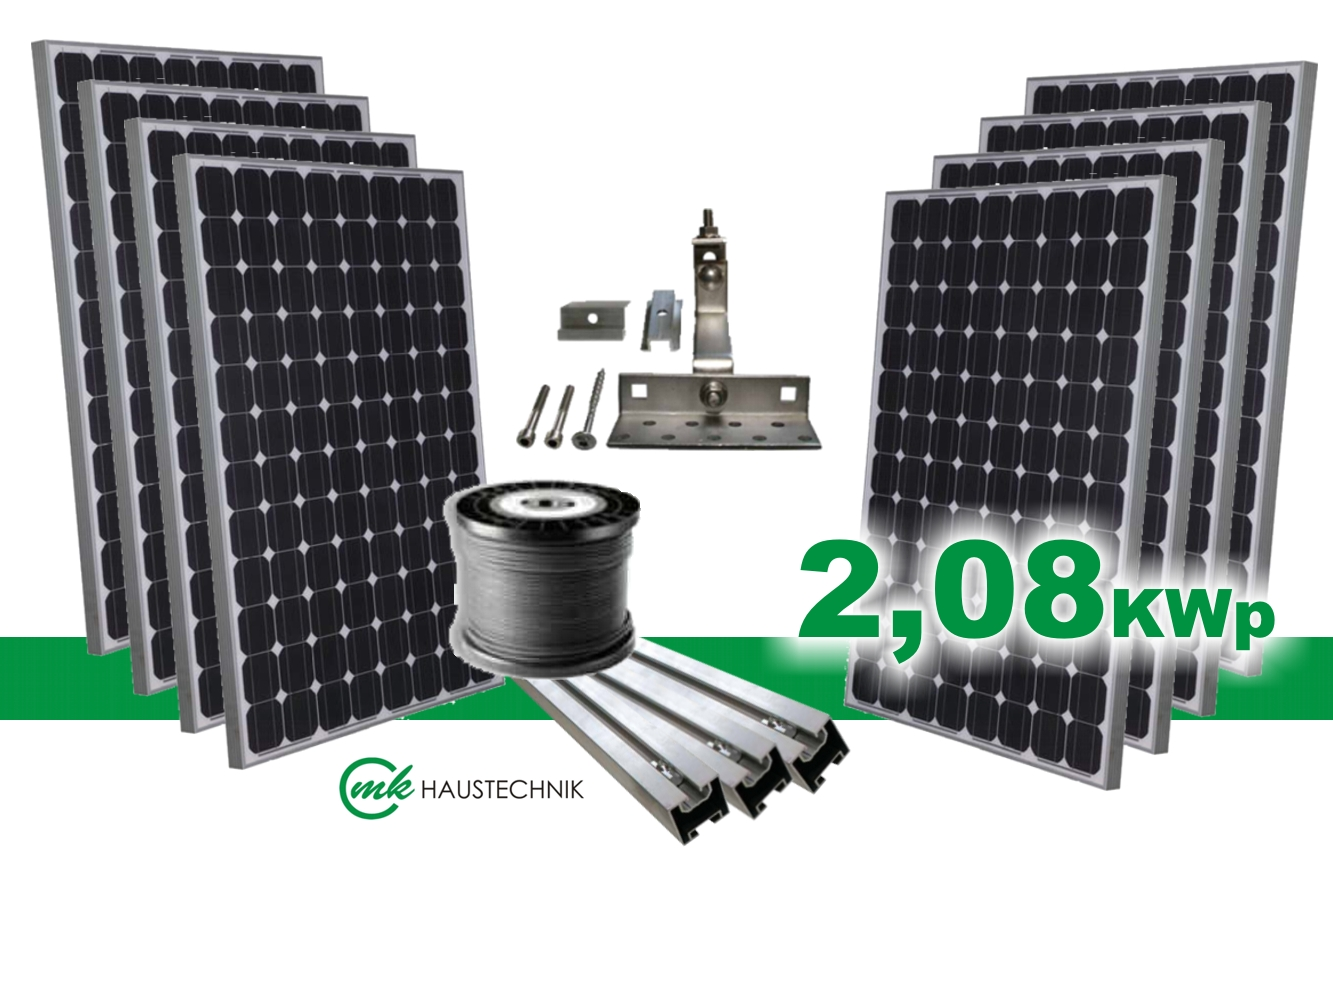 solaranlage bausatz photovoltaikanlage 2 08kwp solarmodule ohne wechselrichter ebay. Black Bedroom Furniture Sets. Home Design Ideas